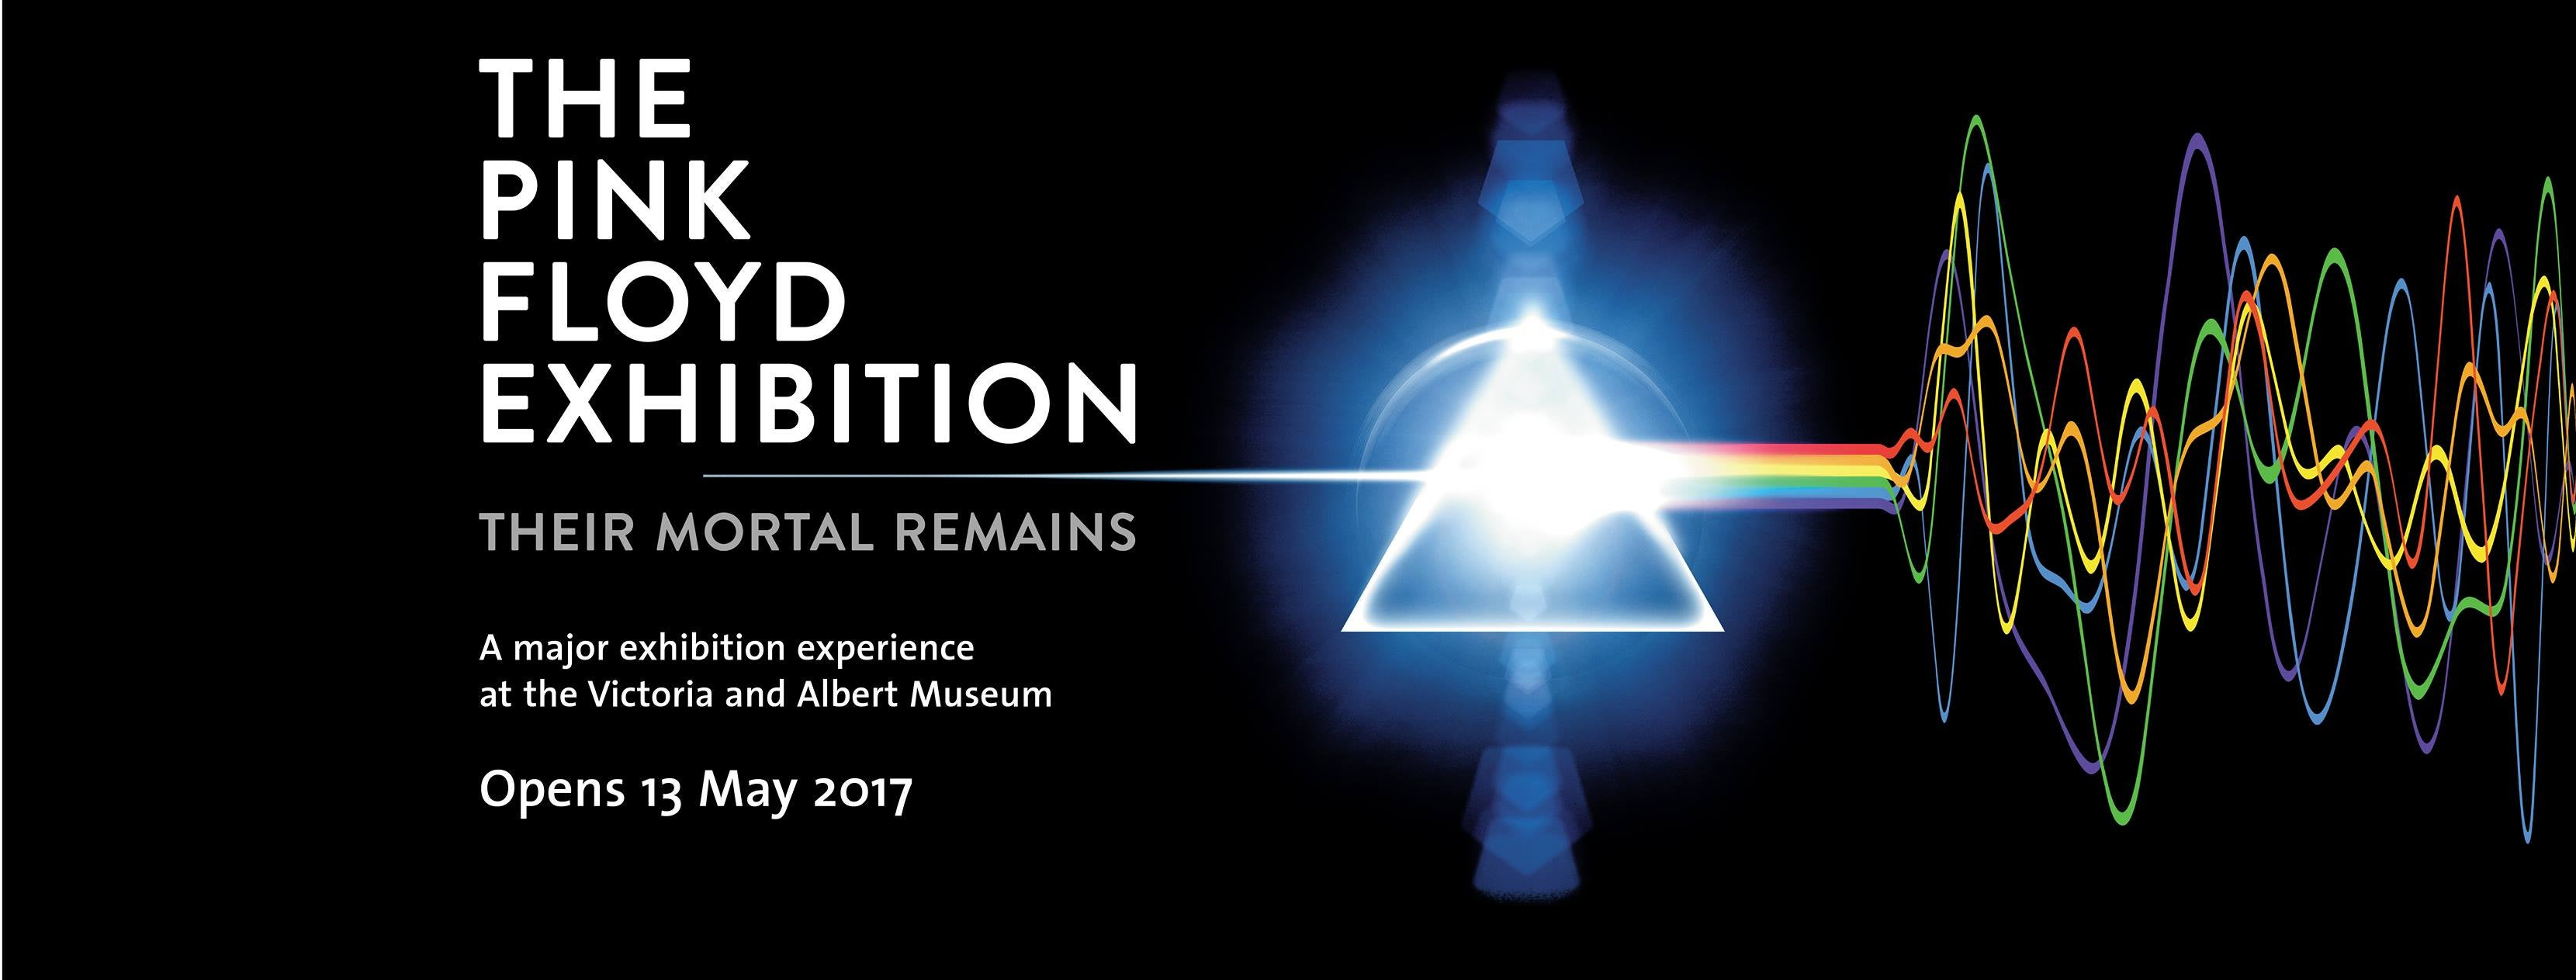 The Pink Floyd Exhibition: Their Mortal Remains - Facebook Live esemény